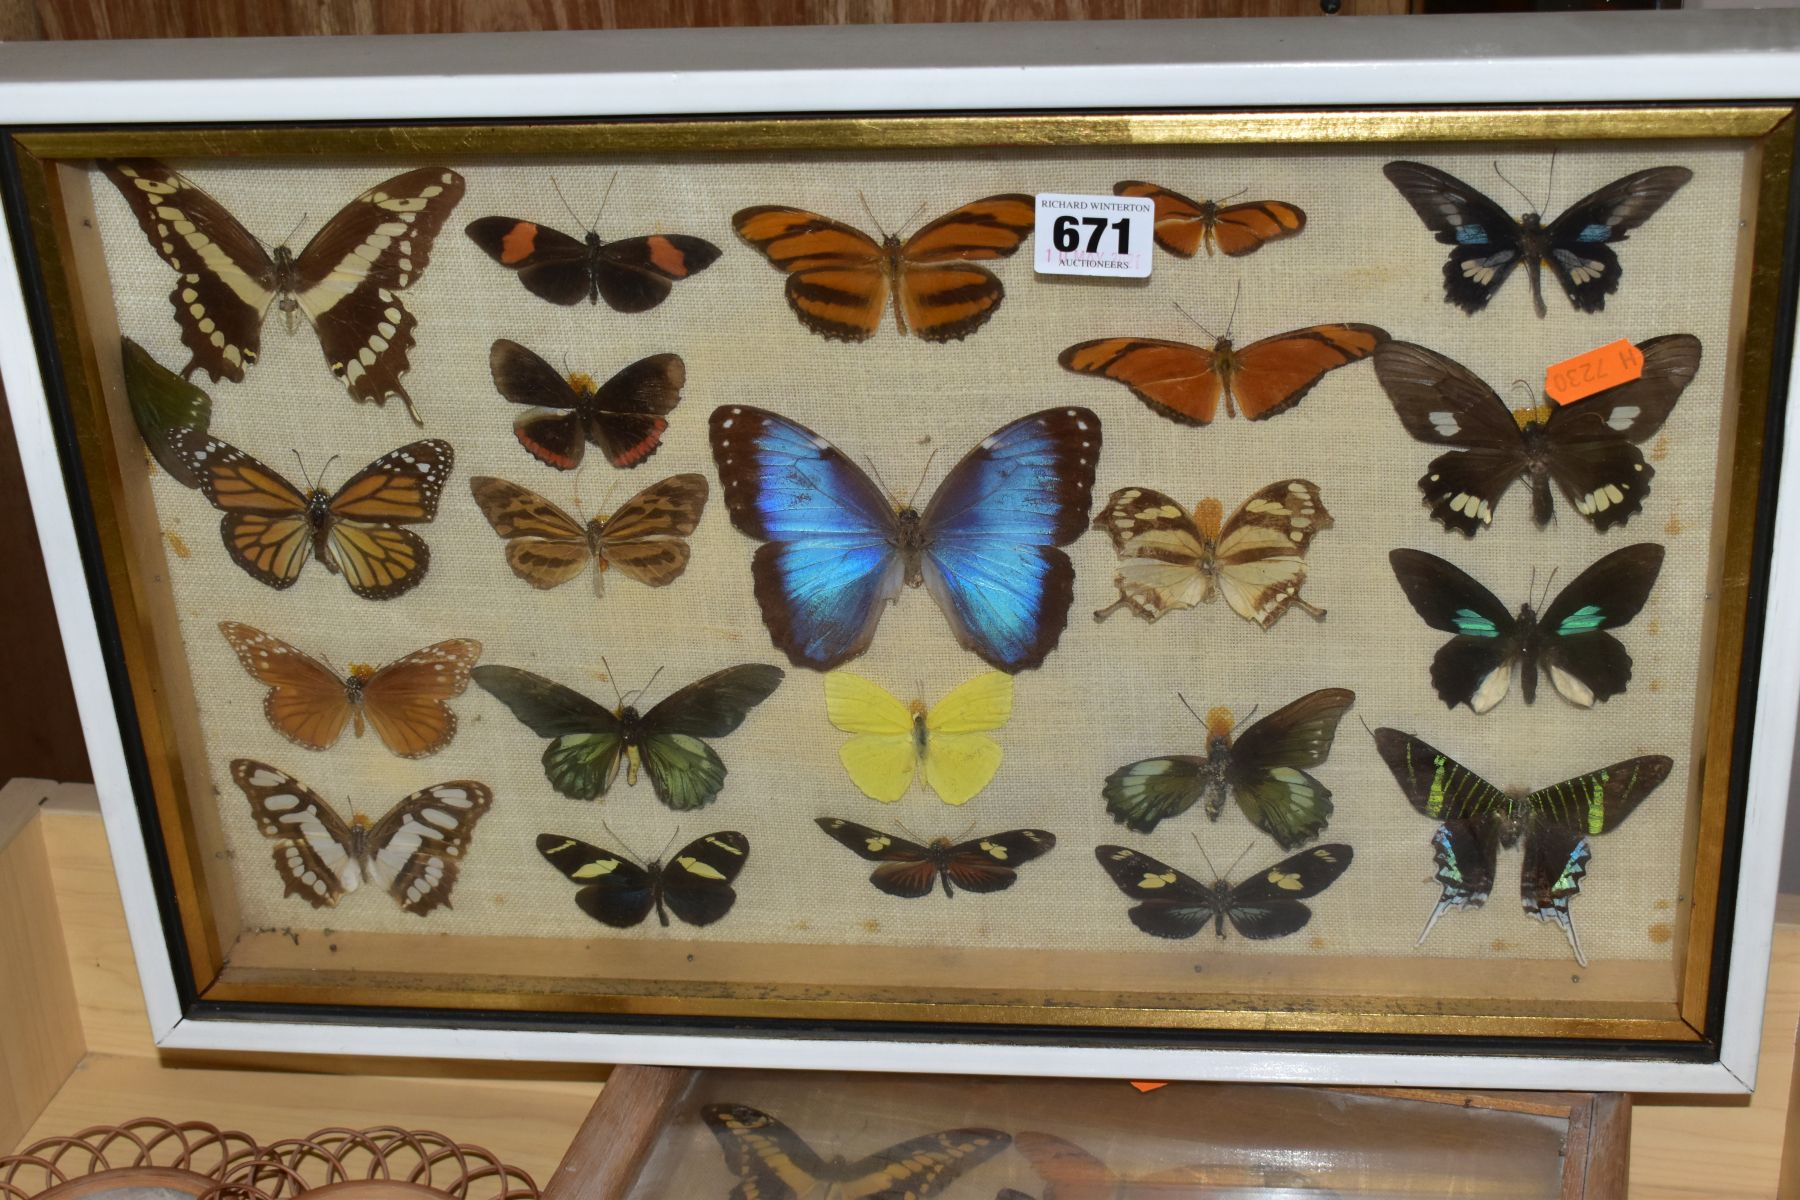 THREE DISPLAY CASES CONTAINING BUTTERFLIES AND MOTH SPECIMENS, together with four circular framed - Image 2 of 10